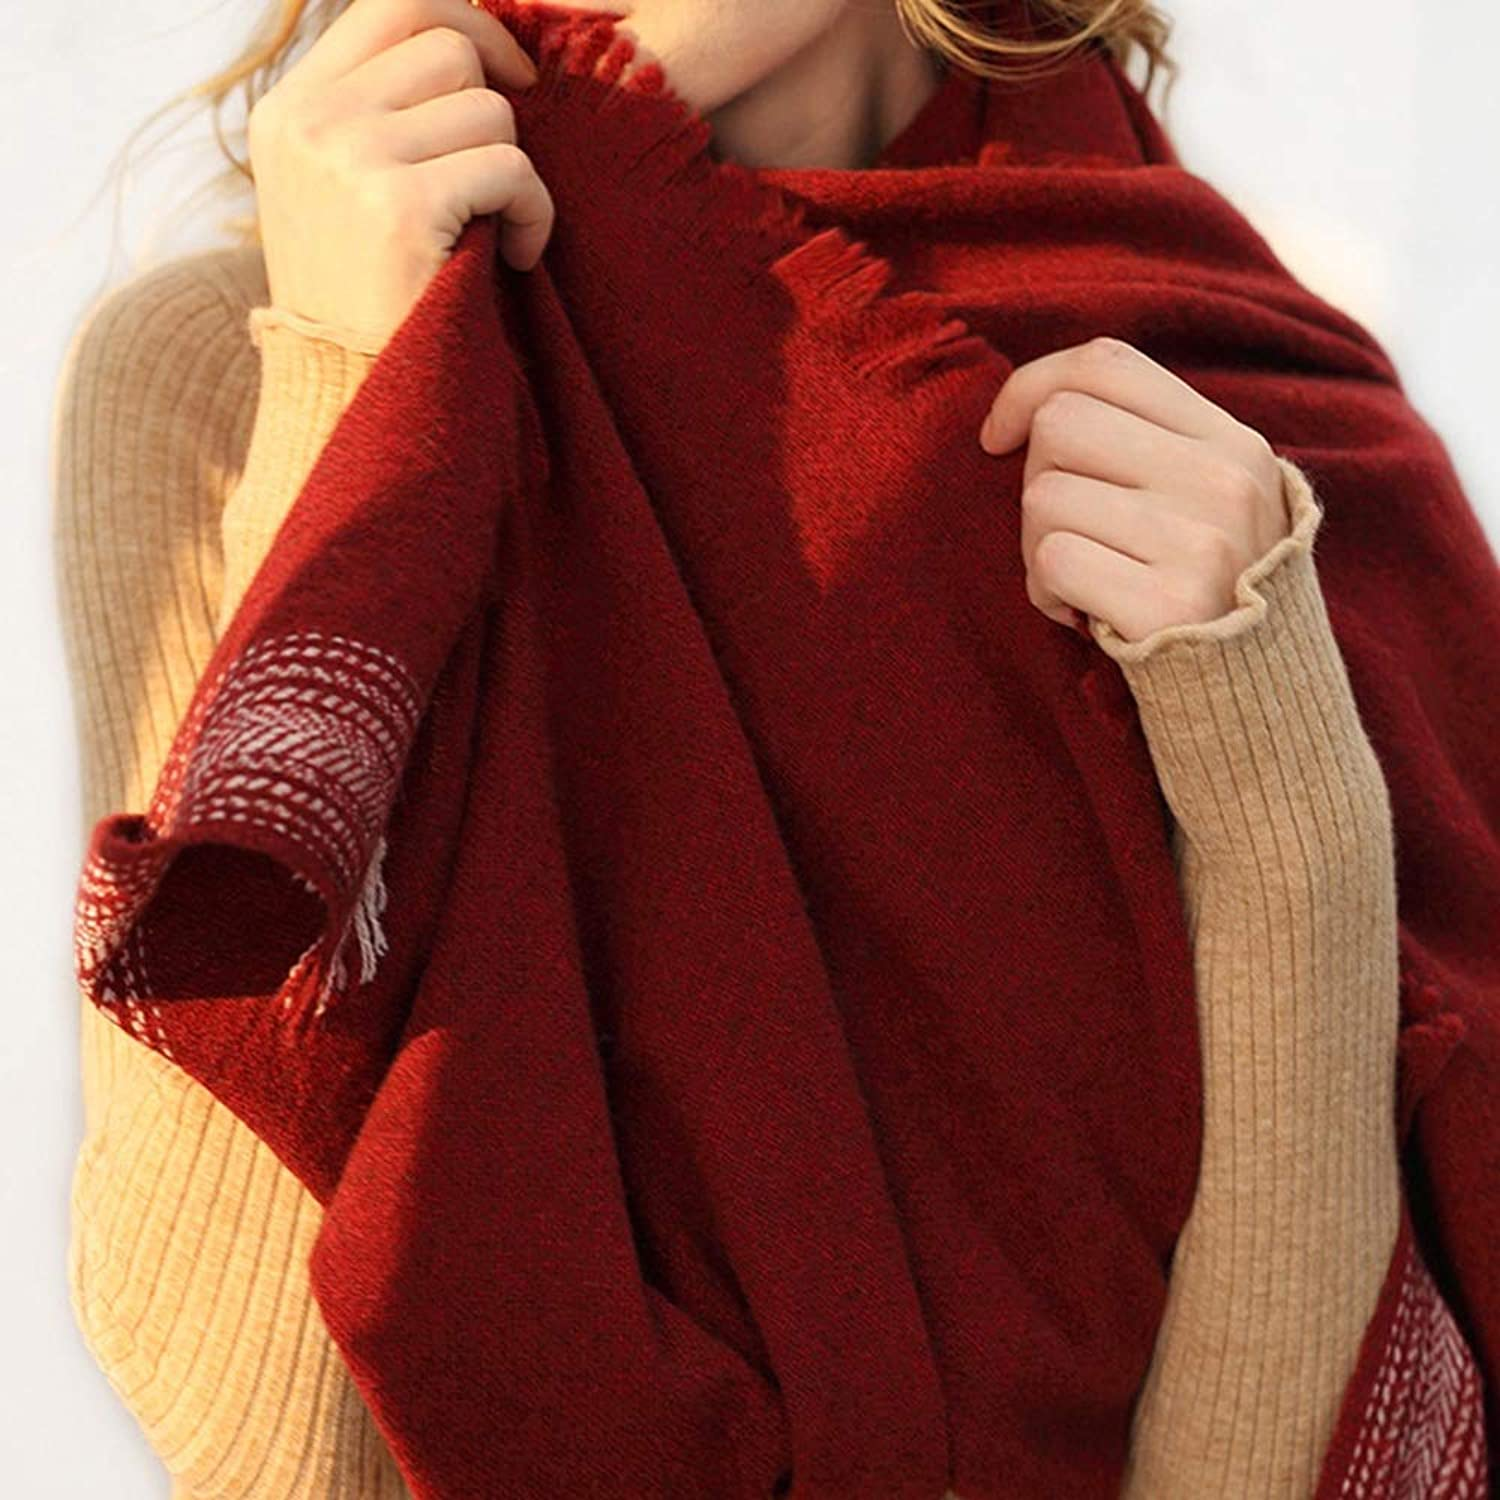 Scarf Lamb Velvet Blend Shawl Ladies Autumn and Winter Solid color Soft Wild Bib Fashion (color   Dark red, Size   One Size)